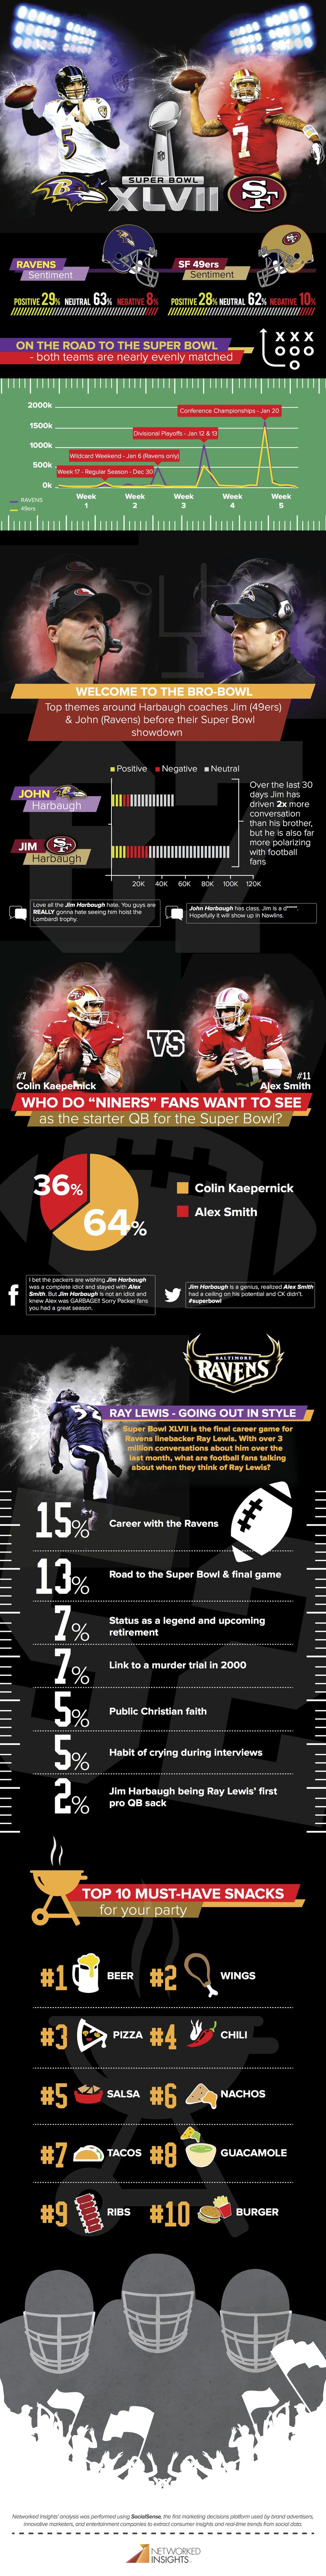 Super-bowl-xlvii-and-social-media